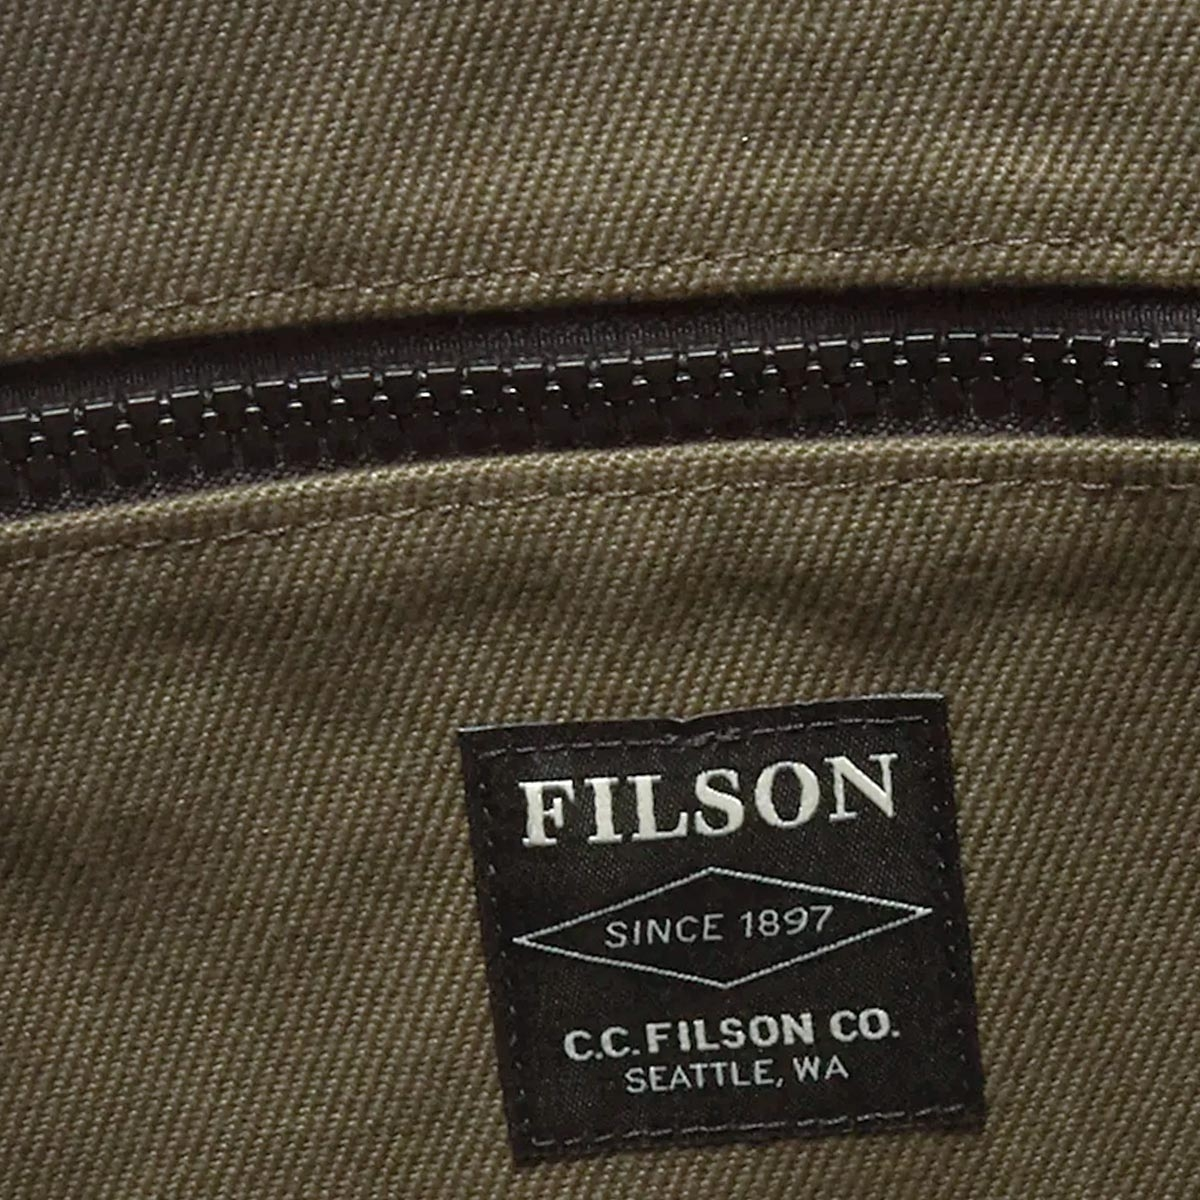 Filson Ranger Backpack 20137828 Otter Green a rugged, vintage inspired, backpack